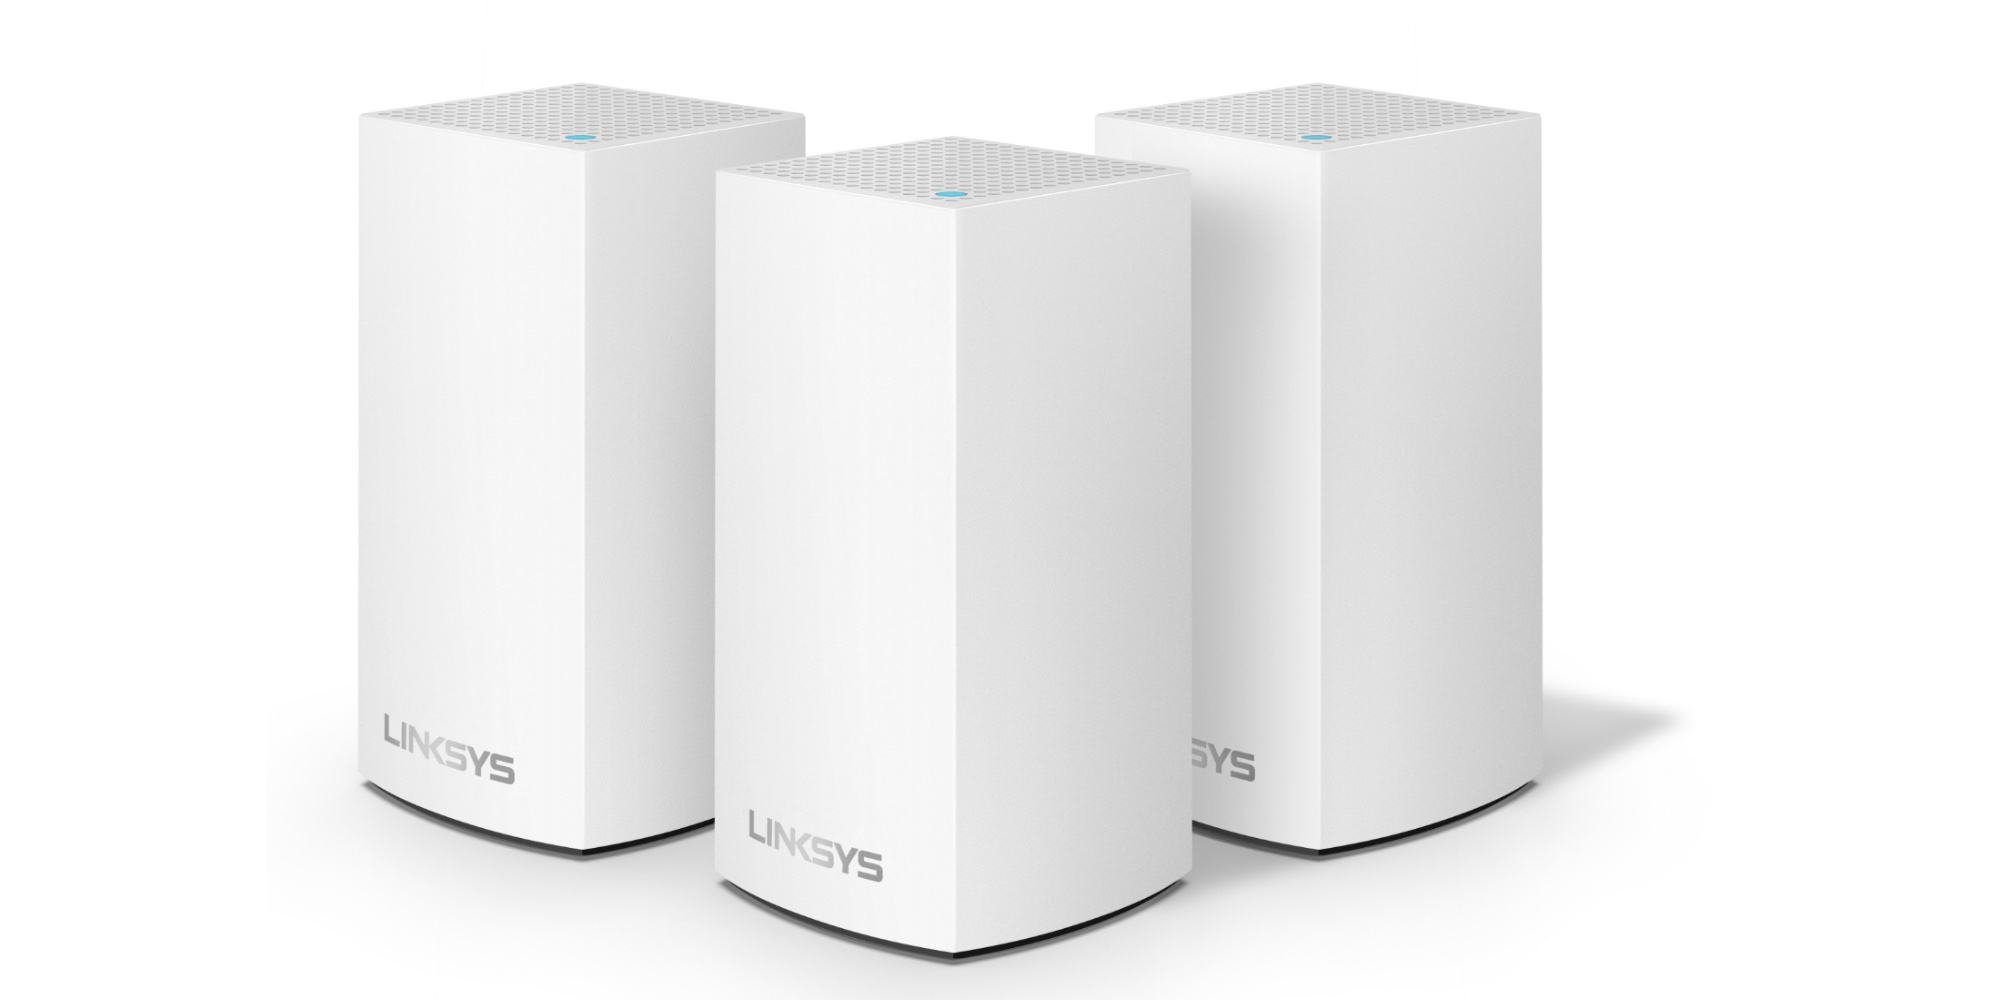 Save 25% on this Linksys Velop Mesh 802.11ac Wi-Fi System at $150 shipped, more